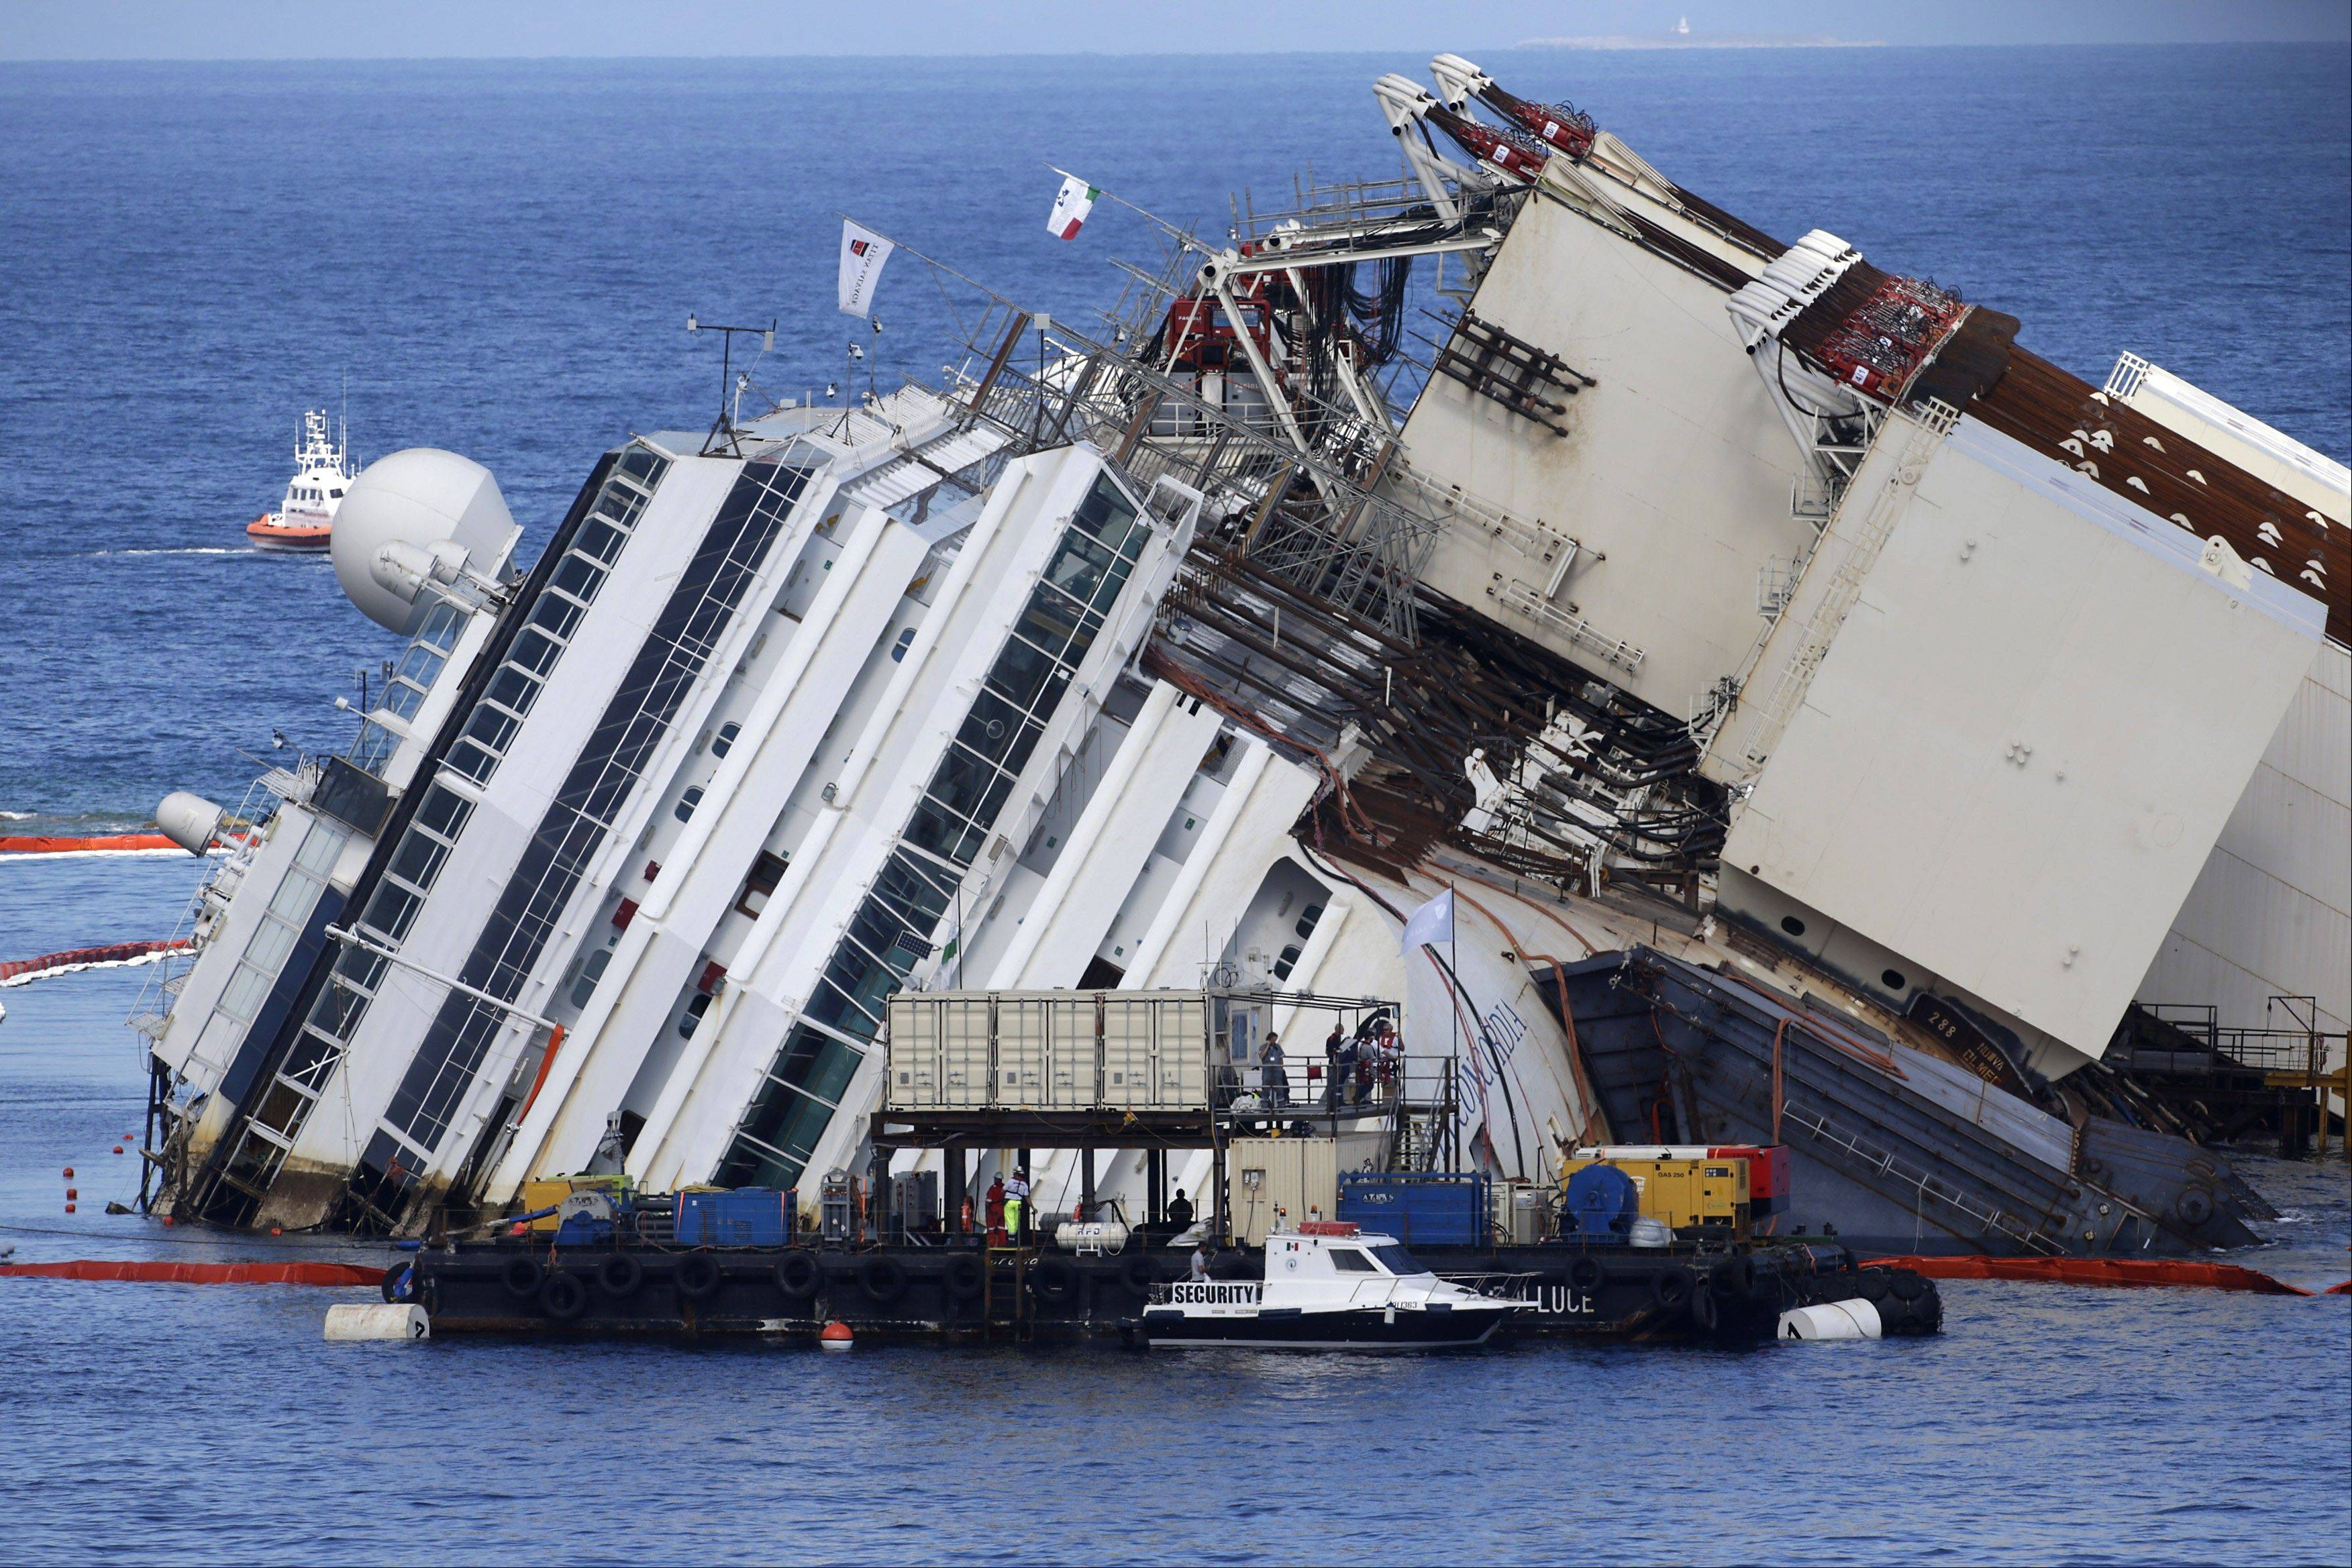 The Costa Concordia ship lies on its side on the Tuscan Island of Giglio, Italy, early Monday morning. An international team of engineers is trying a never-before attempted strategy to set upright the luxury liner, which capsized after striking a reef in 2012 killing 32 people.